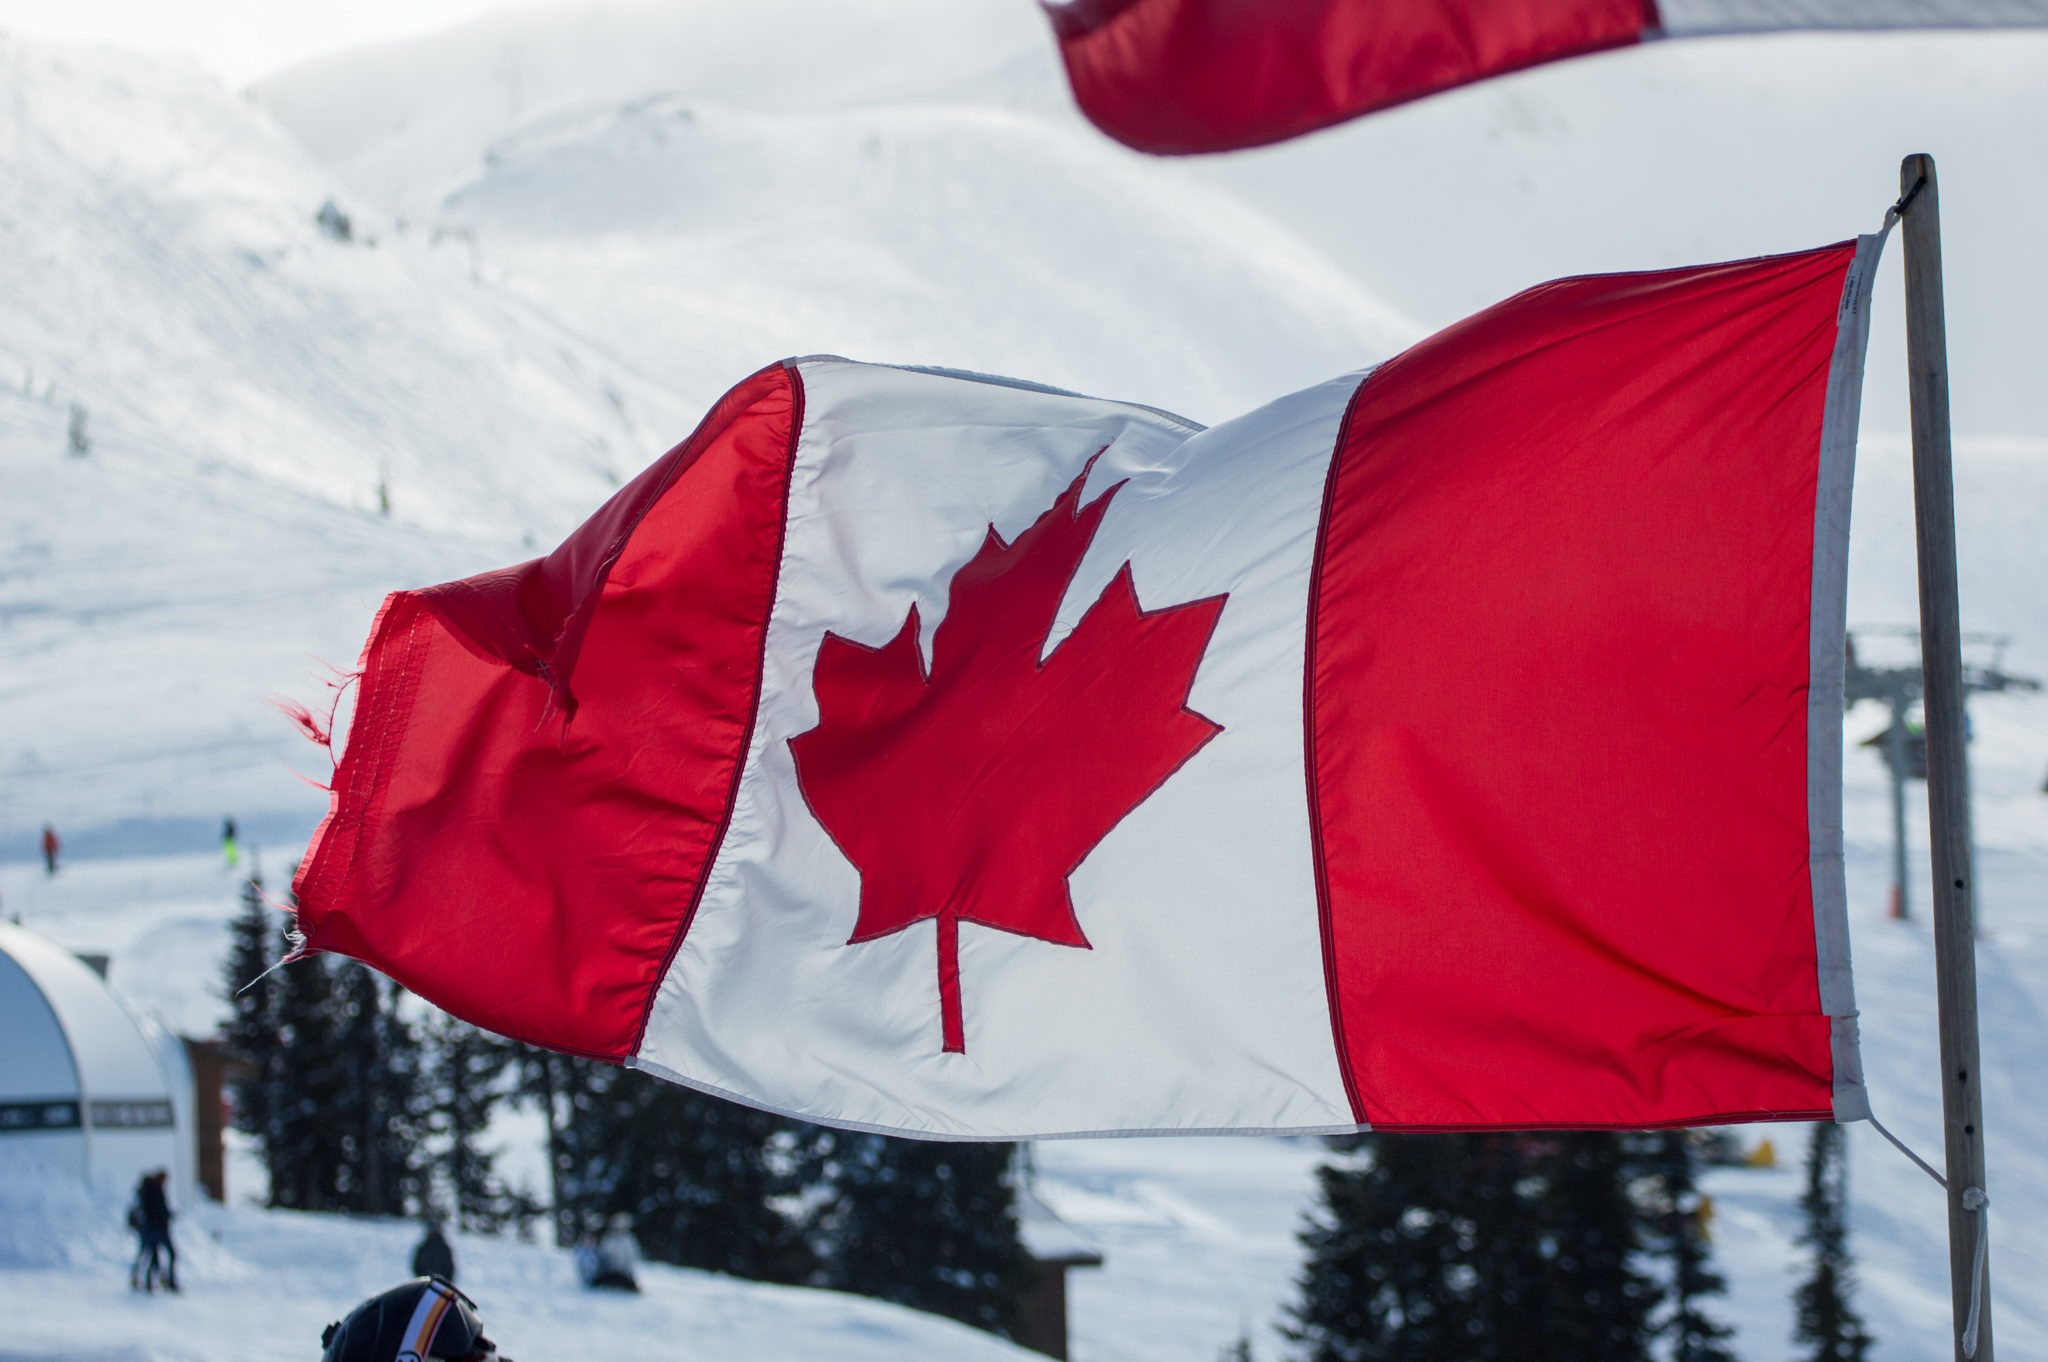 Whistler is in British Columbia, Canada